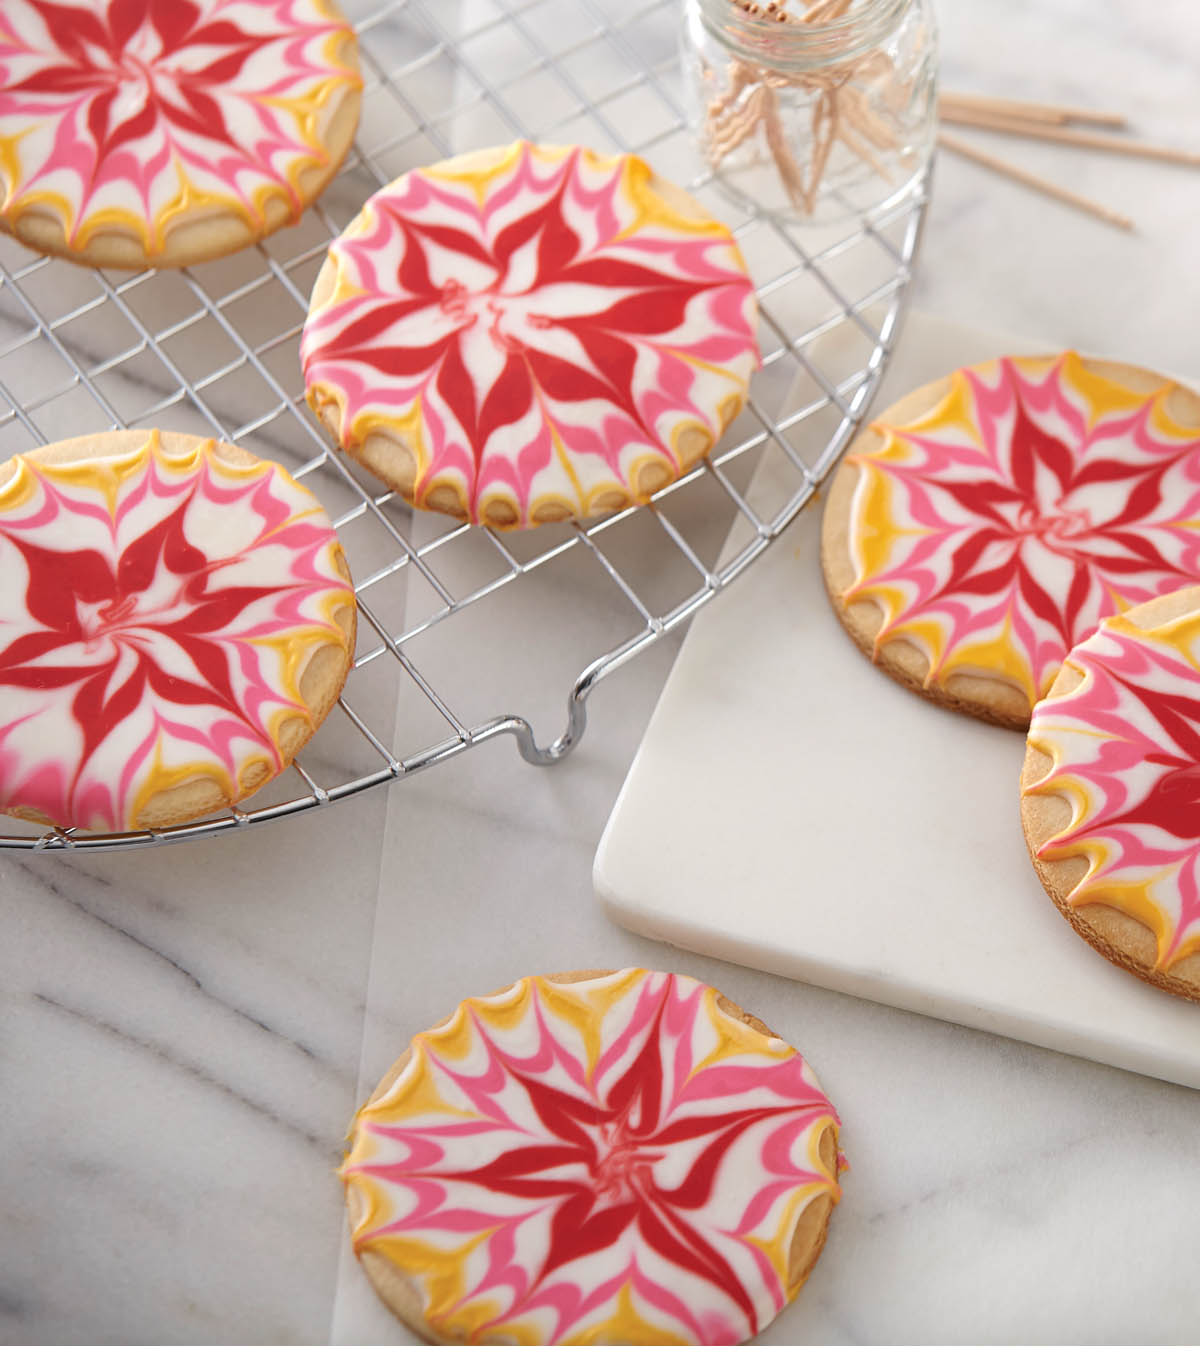 Colorful Floral Cookies